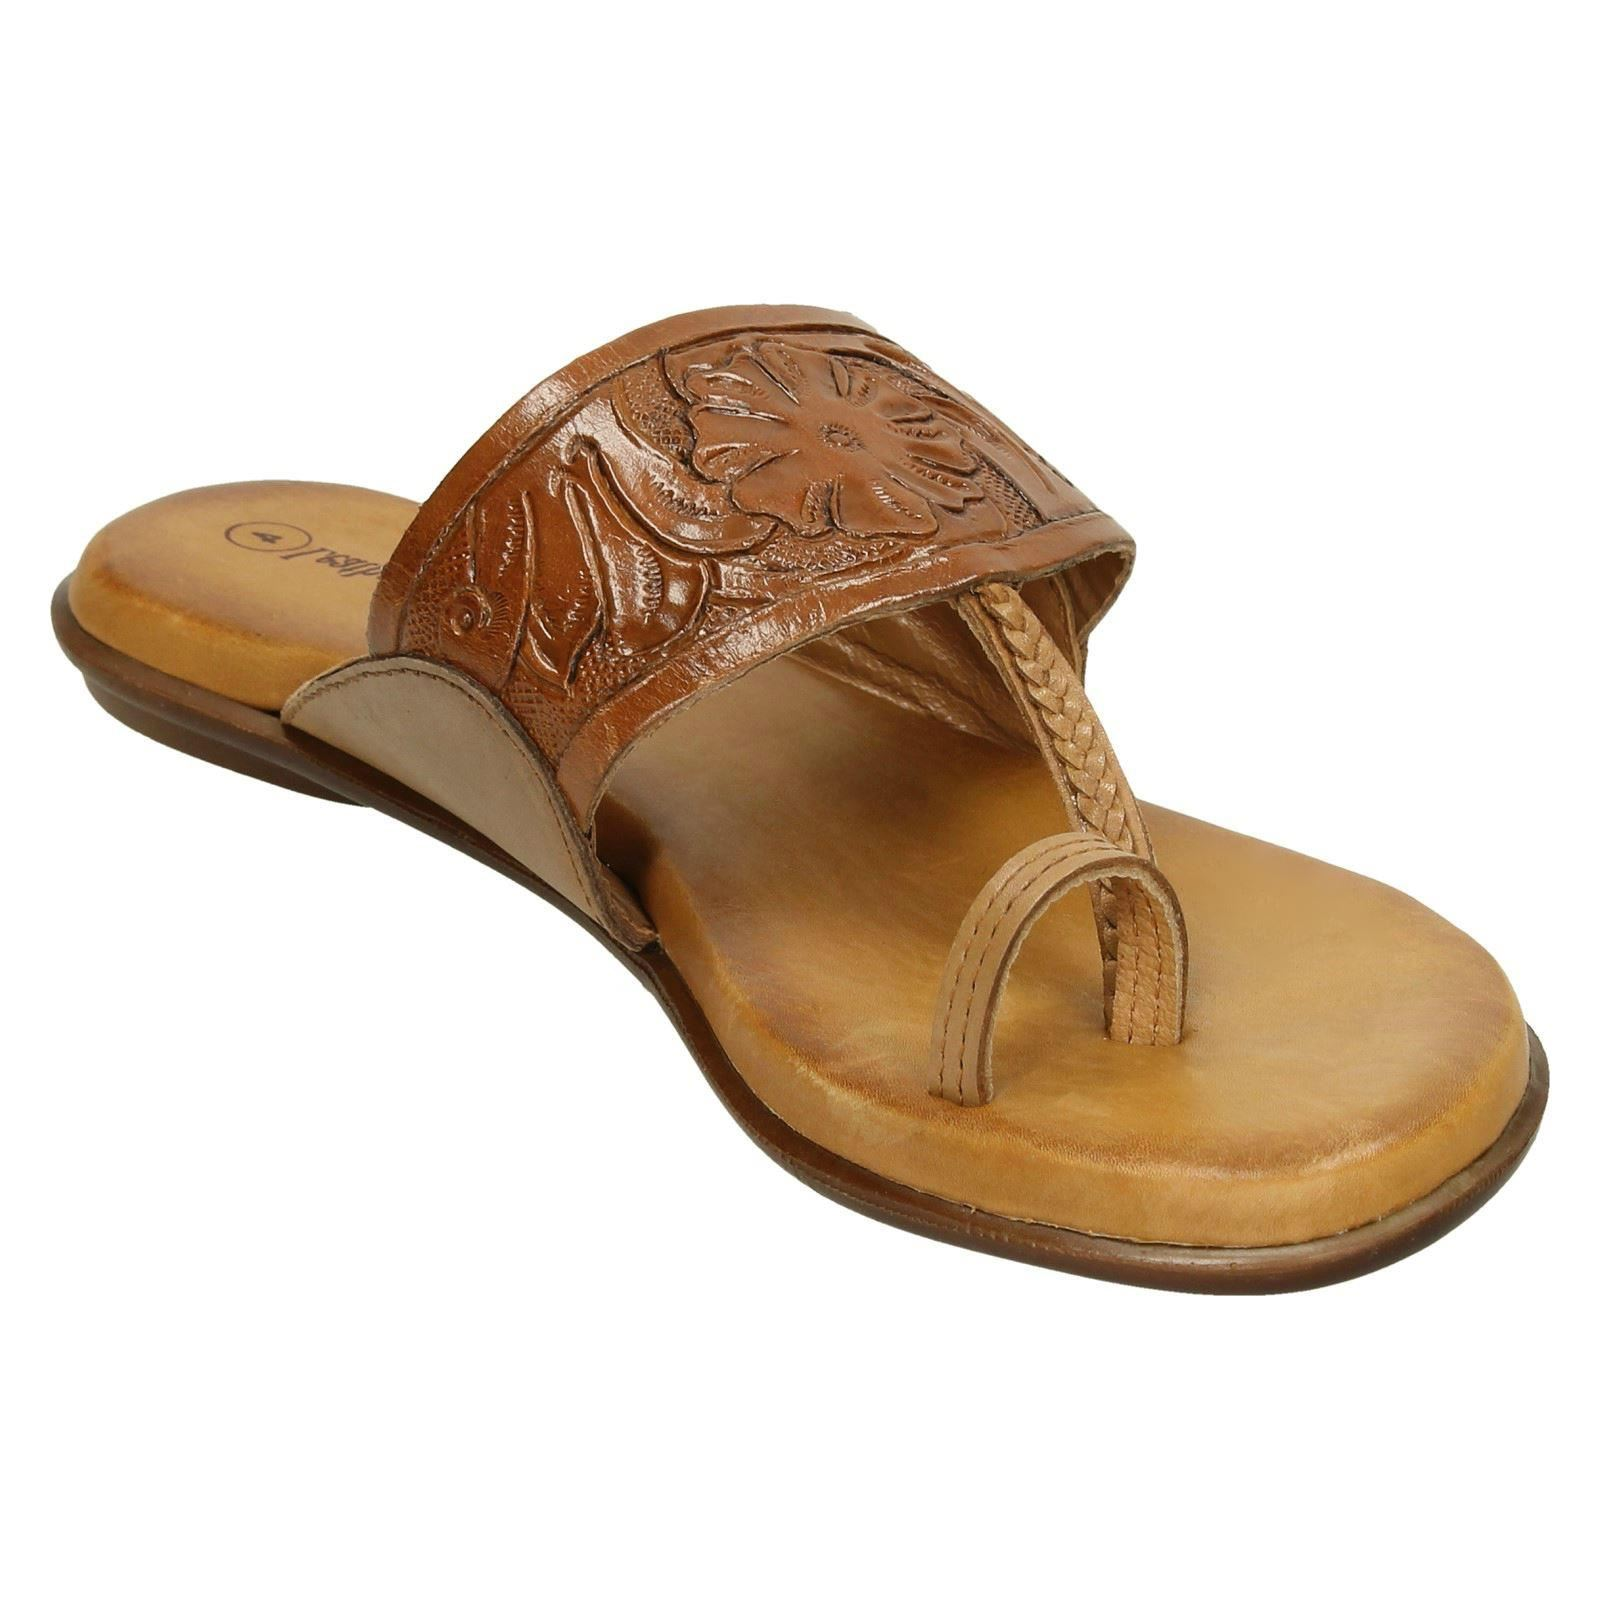 62e3974e5c8 Ladies-Leather-Collection-Flat-Toe-Loop-Sandals-F00041 thumbnail